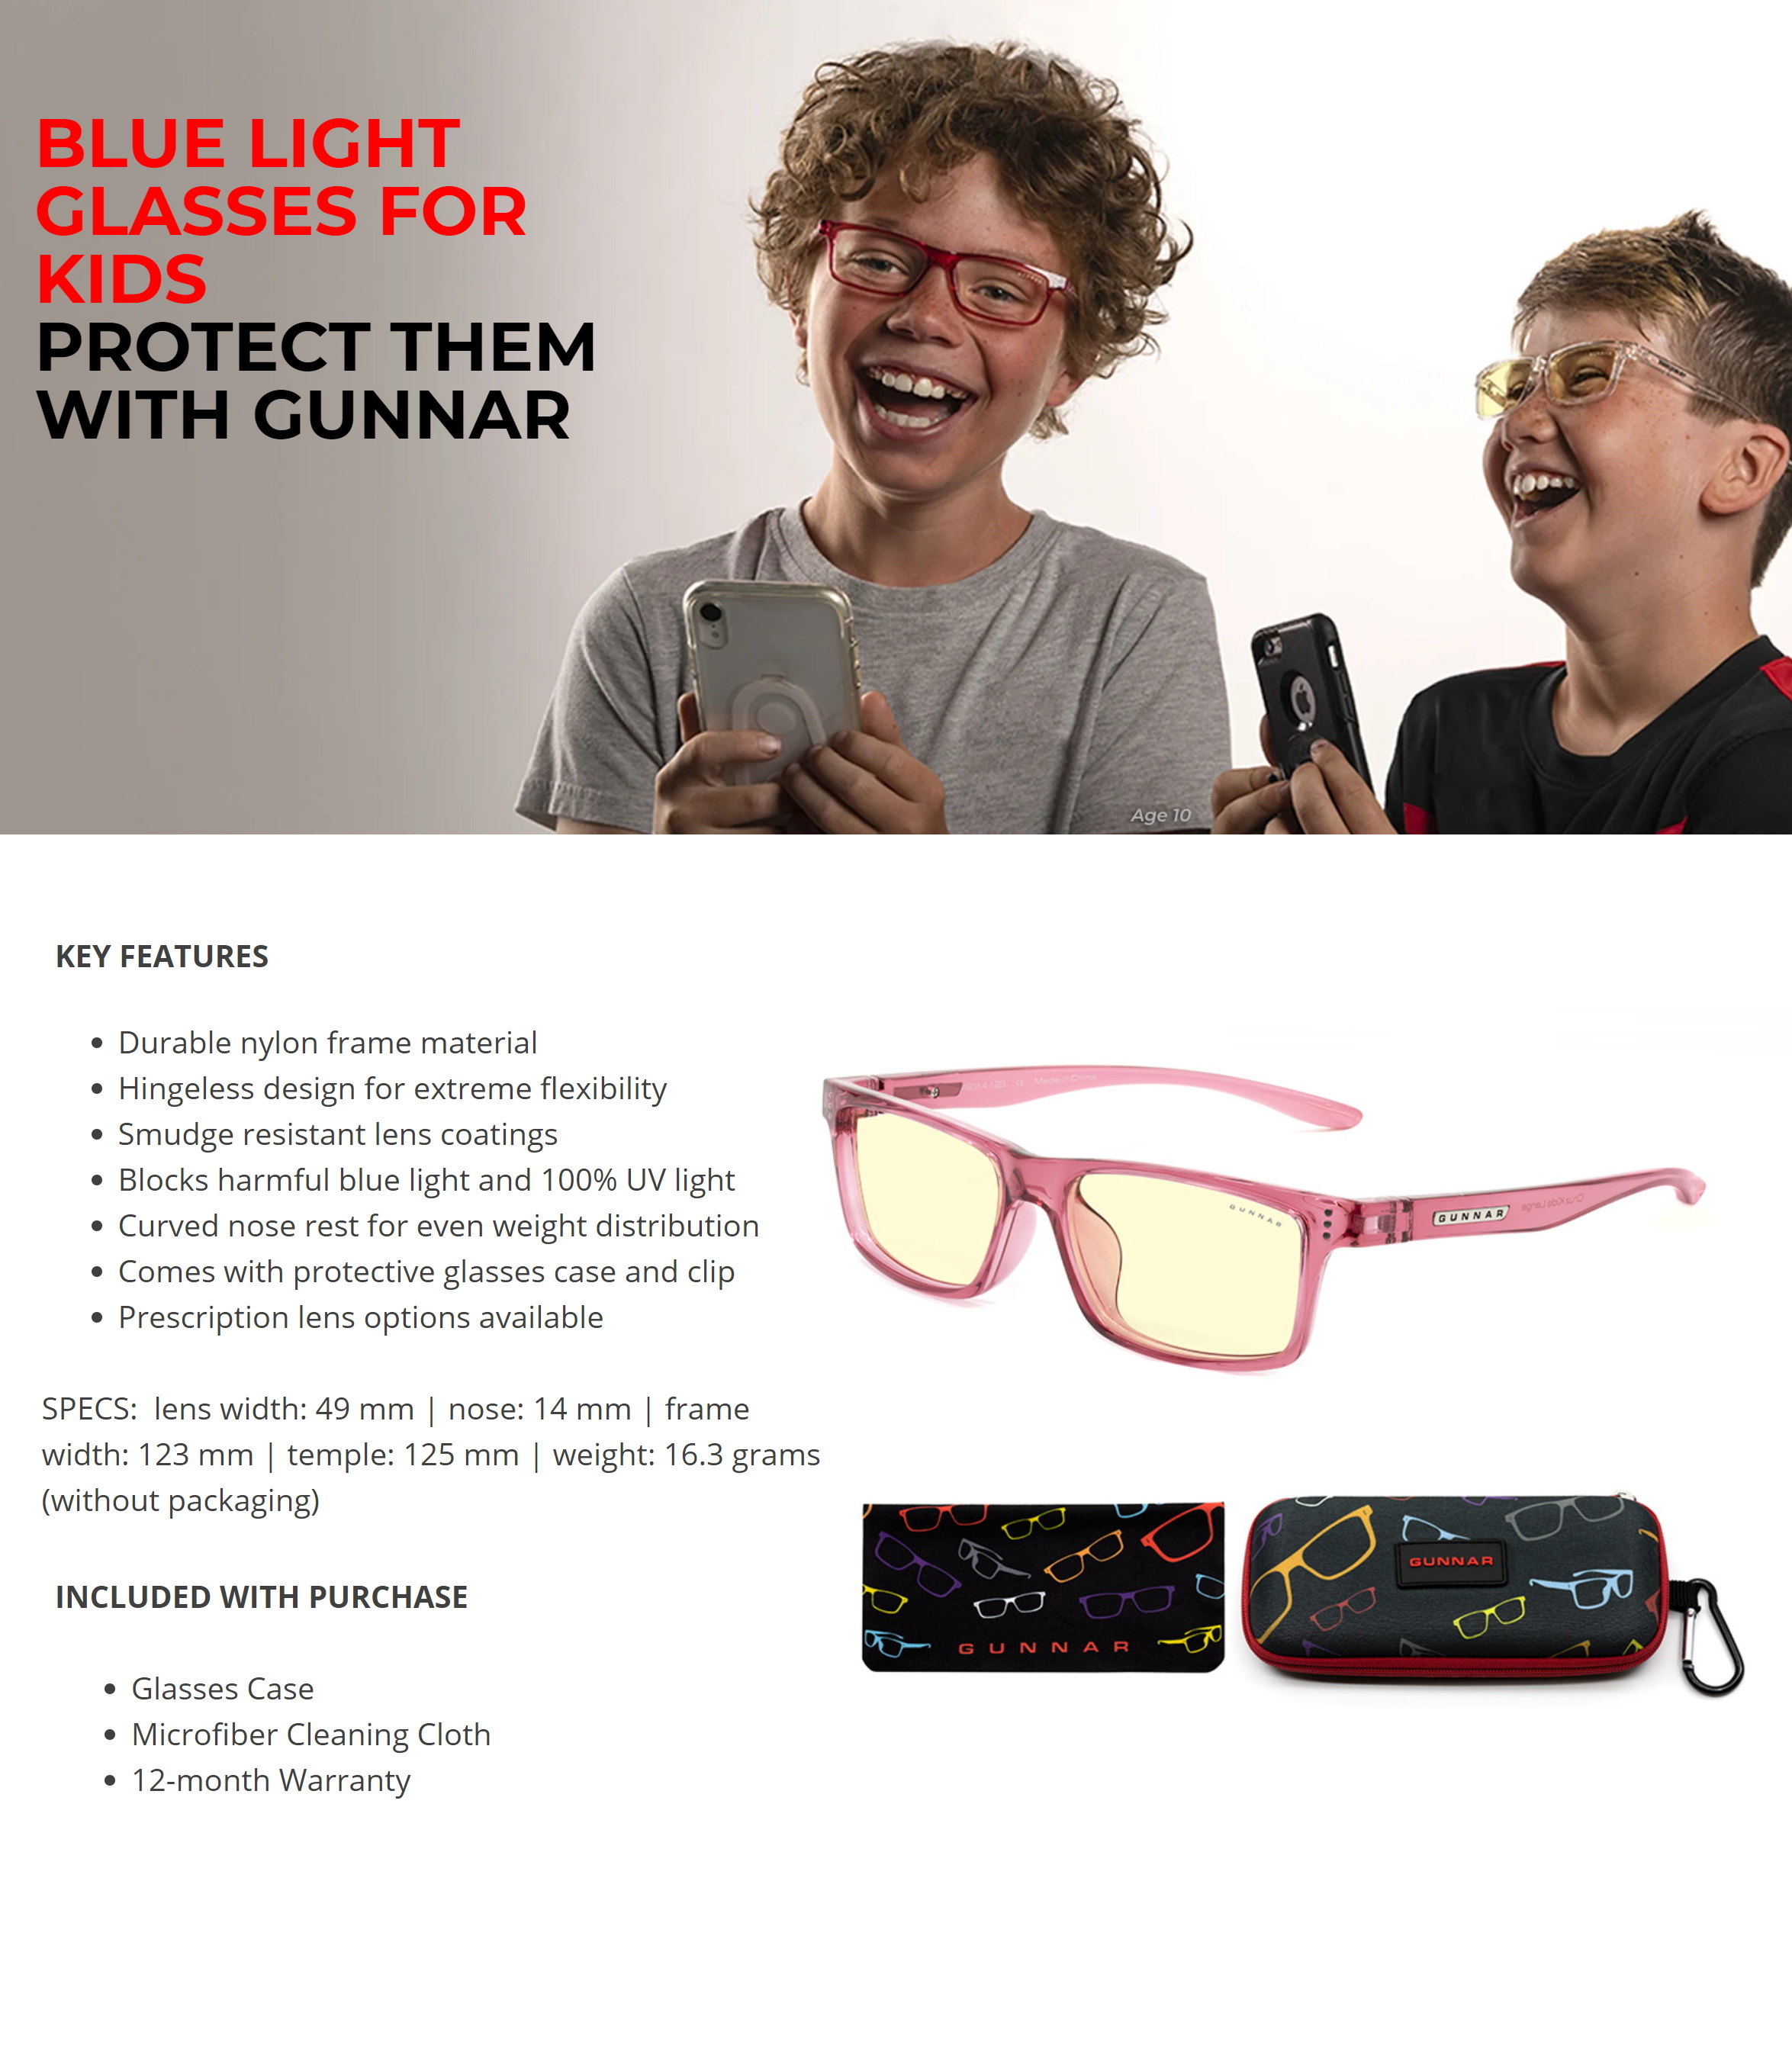 A large marketing image providing additional information about the product Gunnar Cruz Kids Amber Pink Indoor Digital Eyewear Large - Additional alt info not provided